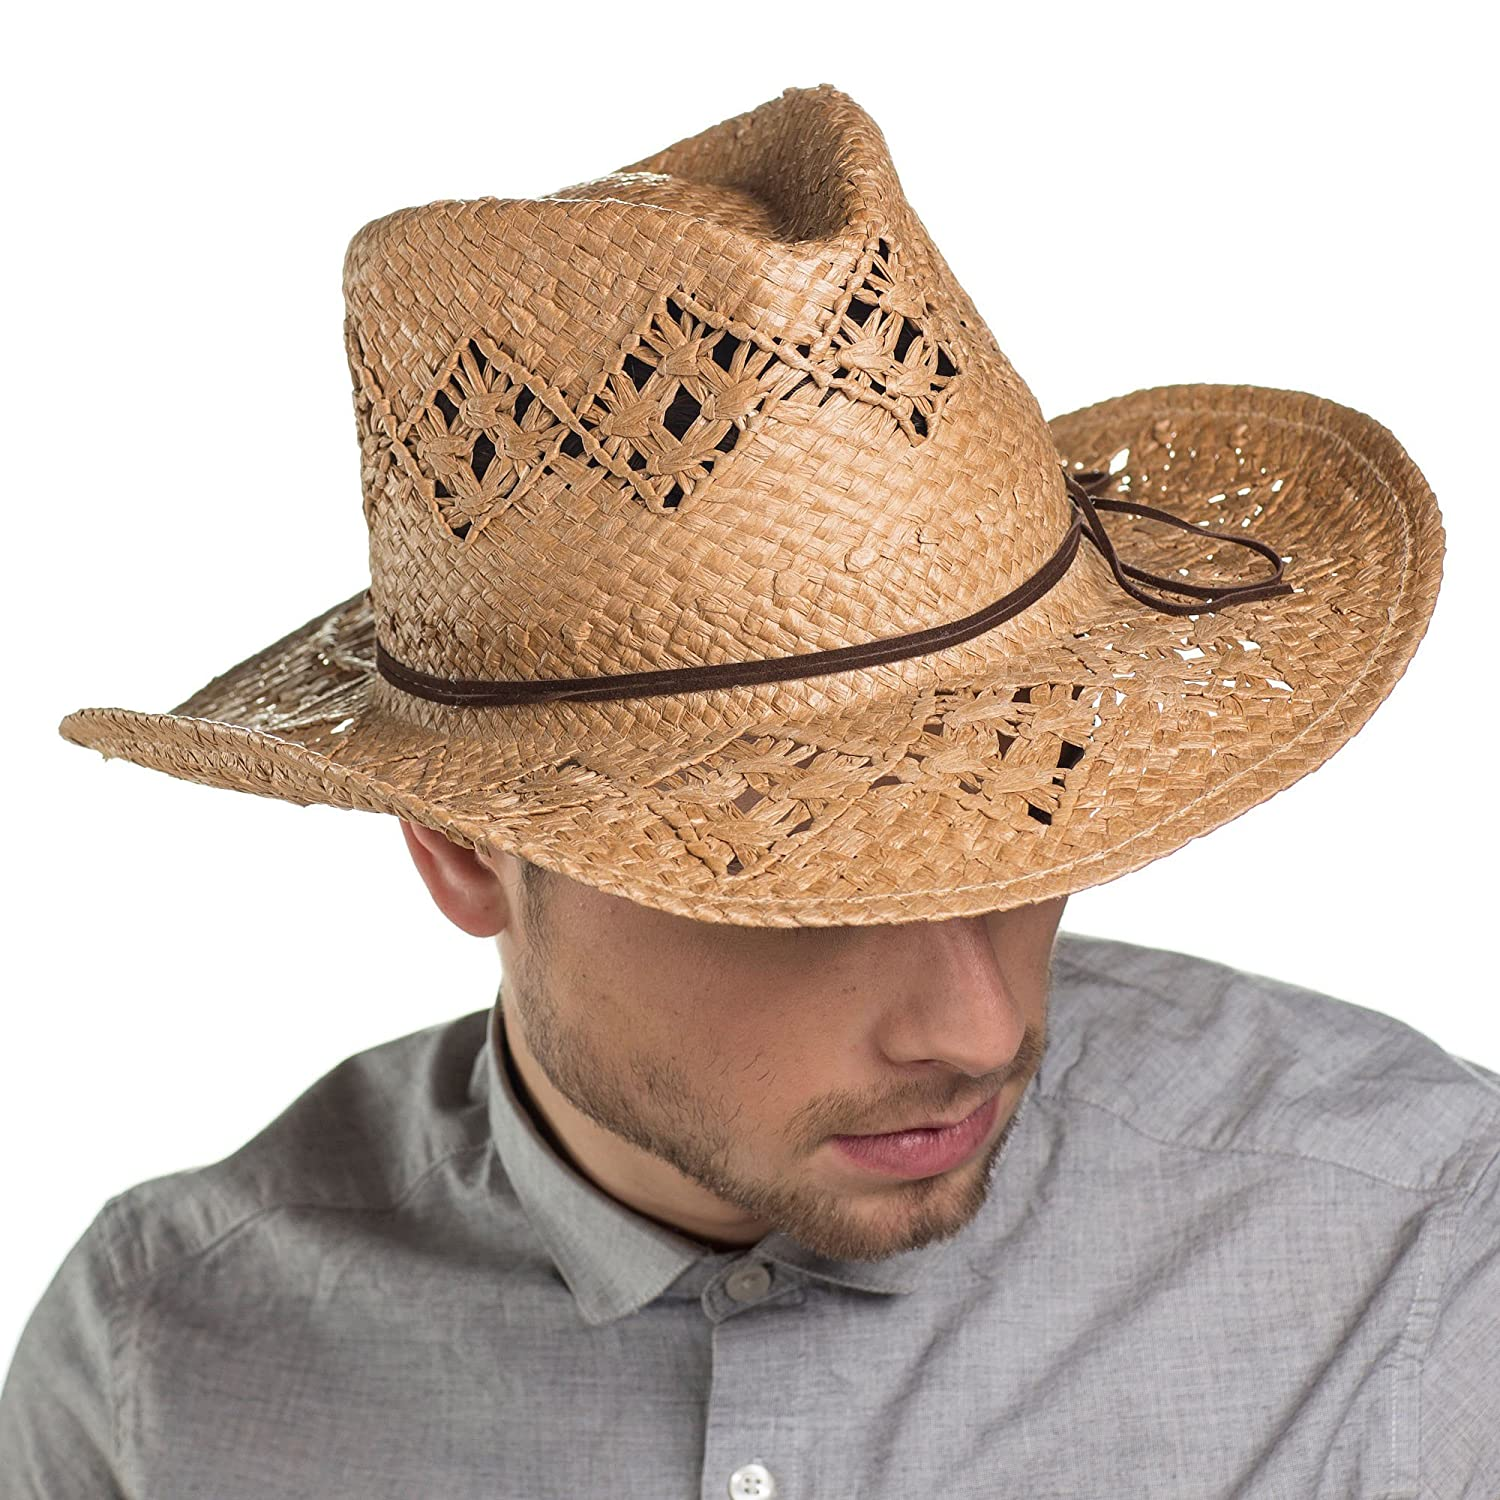 i-Smalls Men's Cowboy Straw Hat with Braid Trim LS15020 MS15020